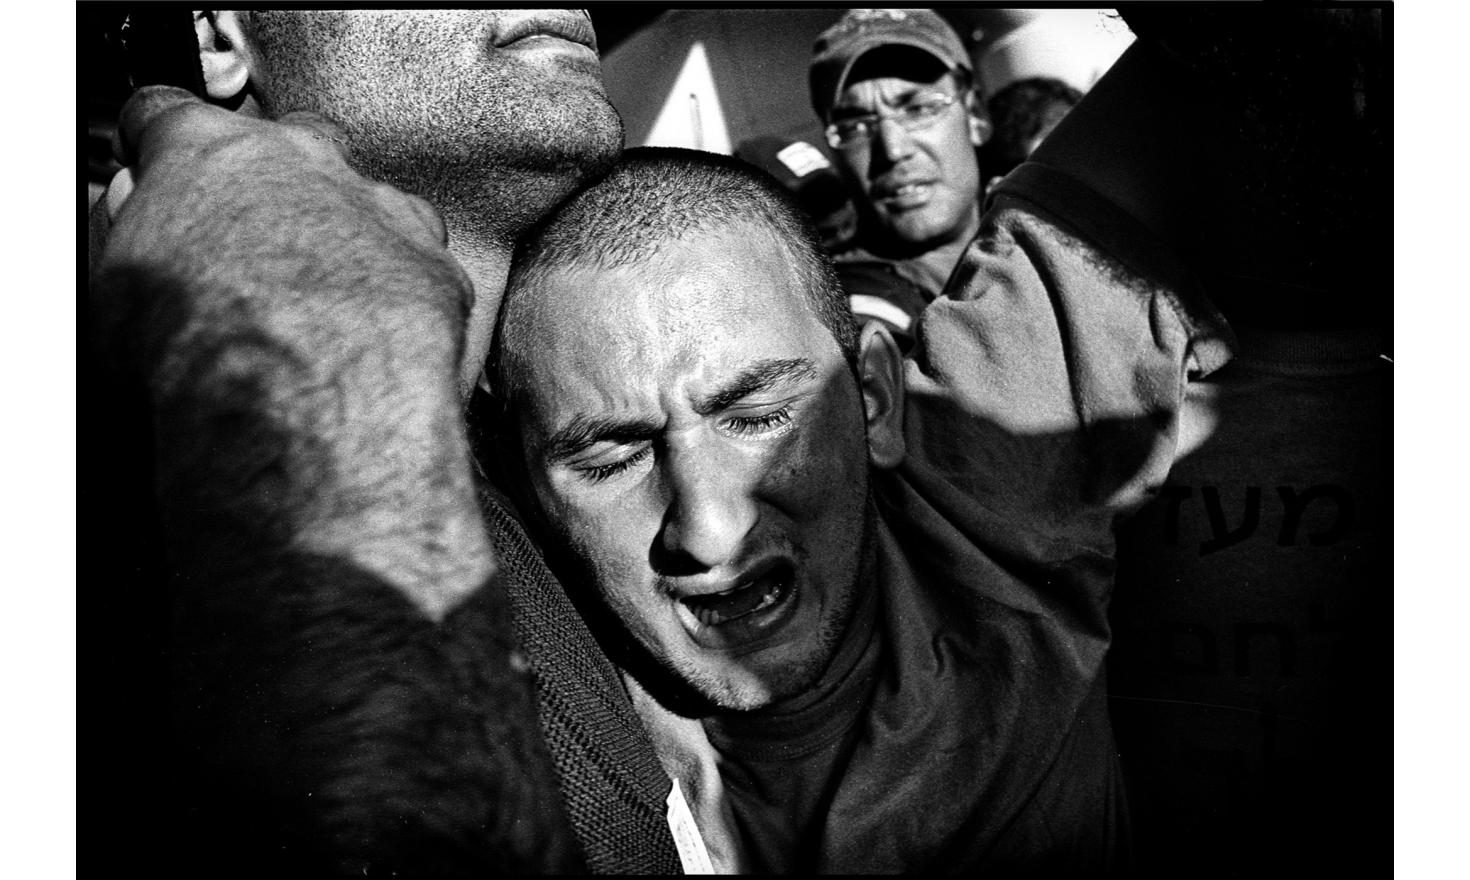 Evacuation of the  settlements of Gush Katif by the Israeli army. Gaza, August 2005.